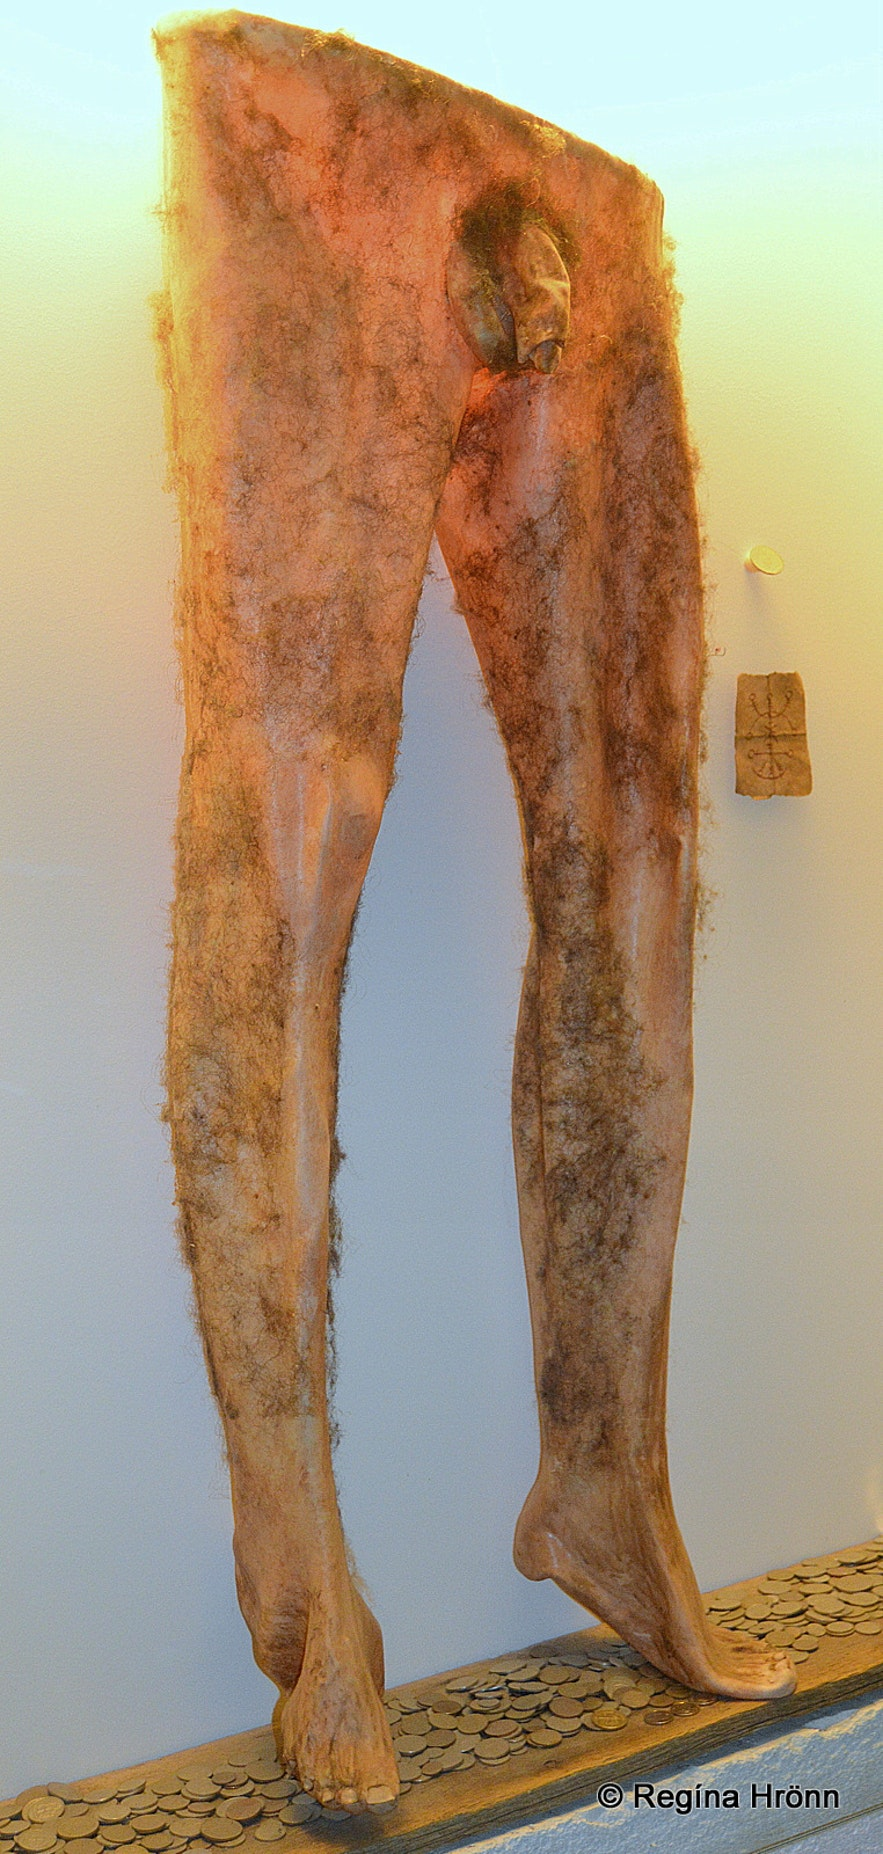 The necropants at theMuseum of Icelandic Witchcraft and Sorcery